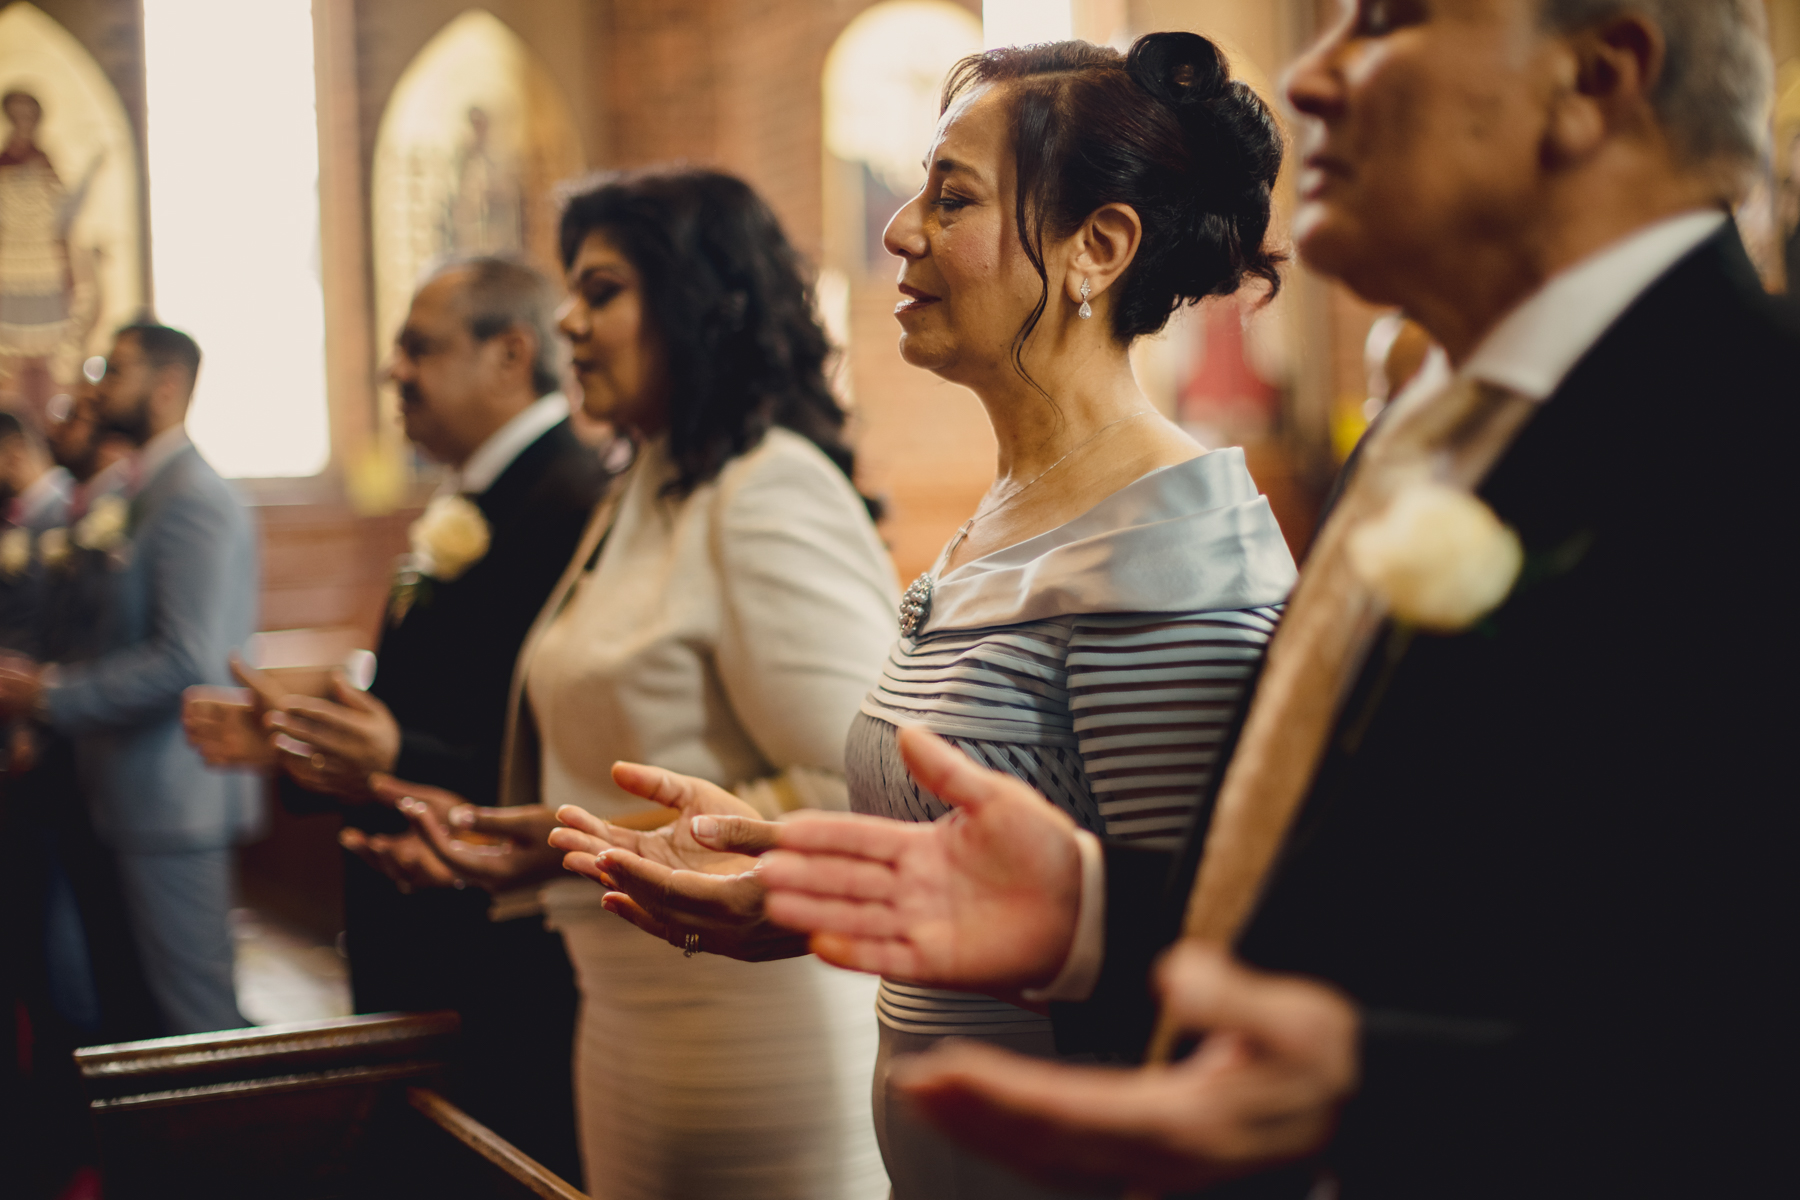 London Church Ceremony Wedding Picture - England | the family members and guests worship together